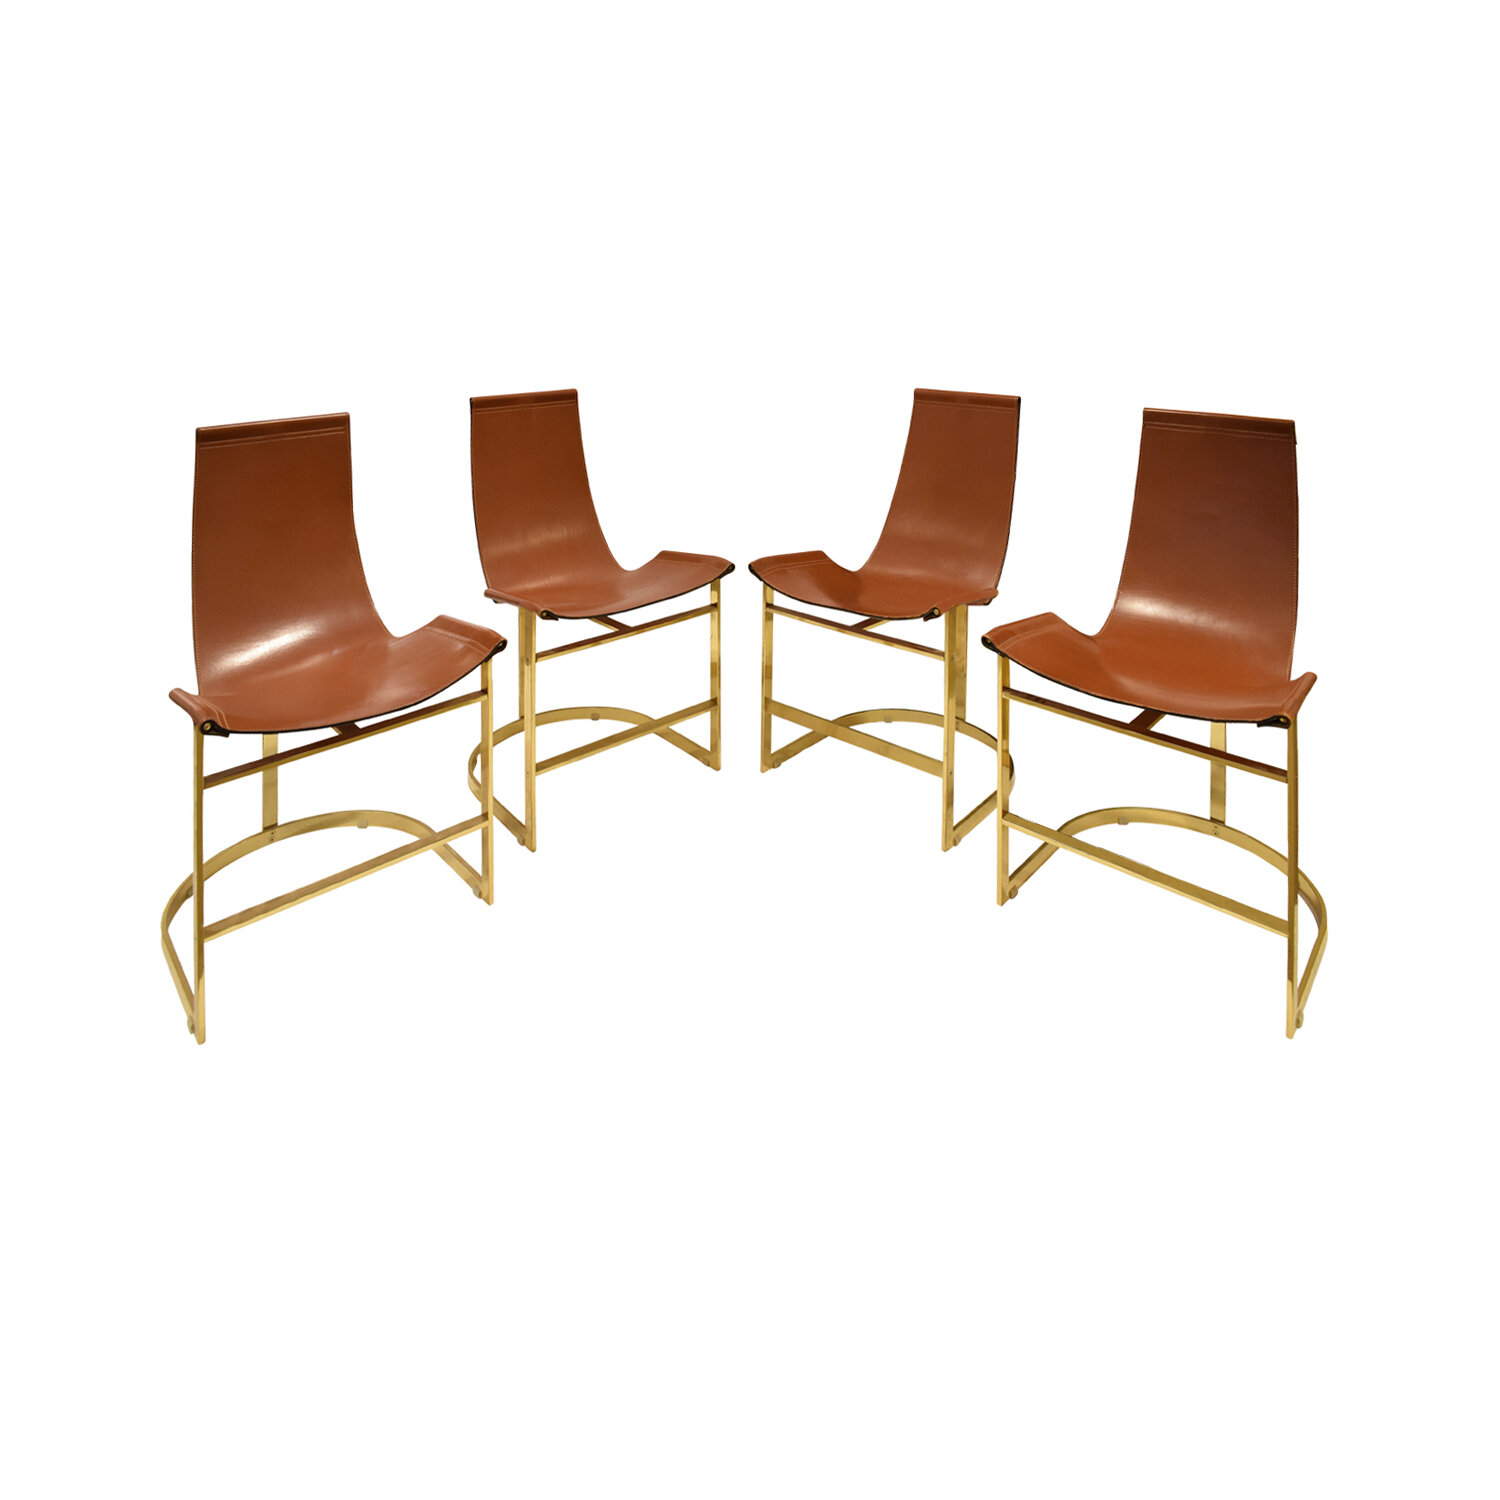 70s 75 brass with leather sling dinningchairs197 main.jpg